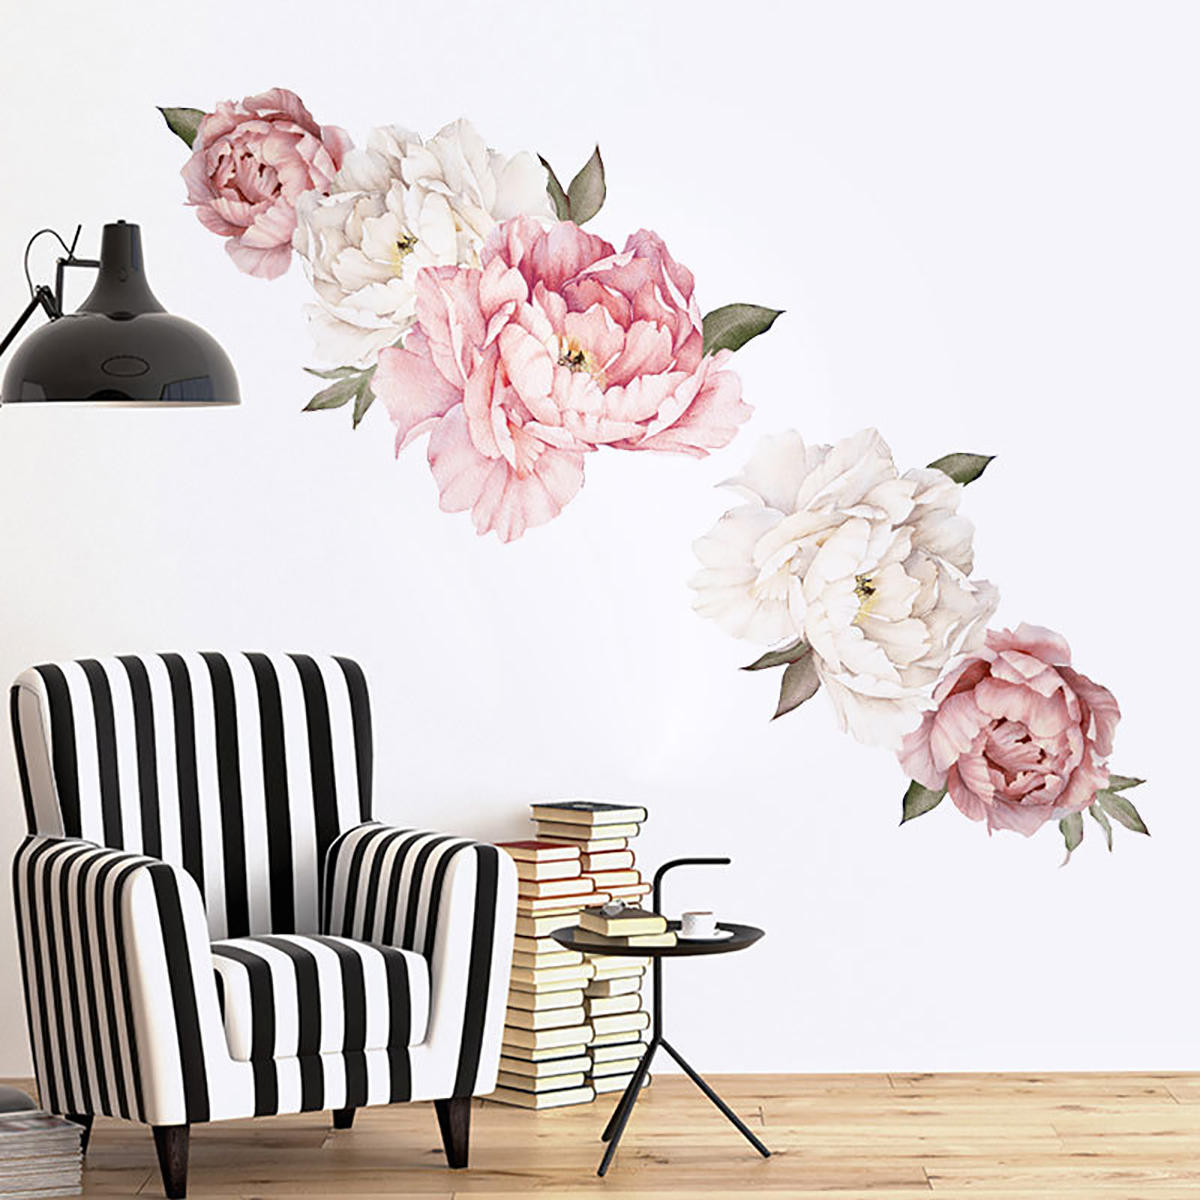 Peony Wall Paper Floral Wall Decals Watercolor Peony Self Adhesive Wall Sticker Creative Stickers